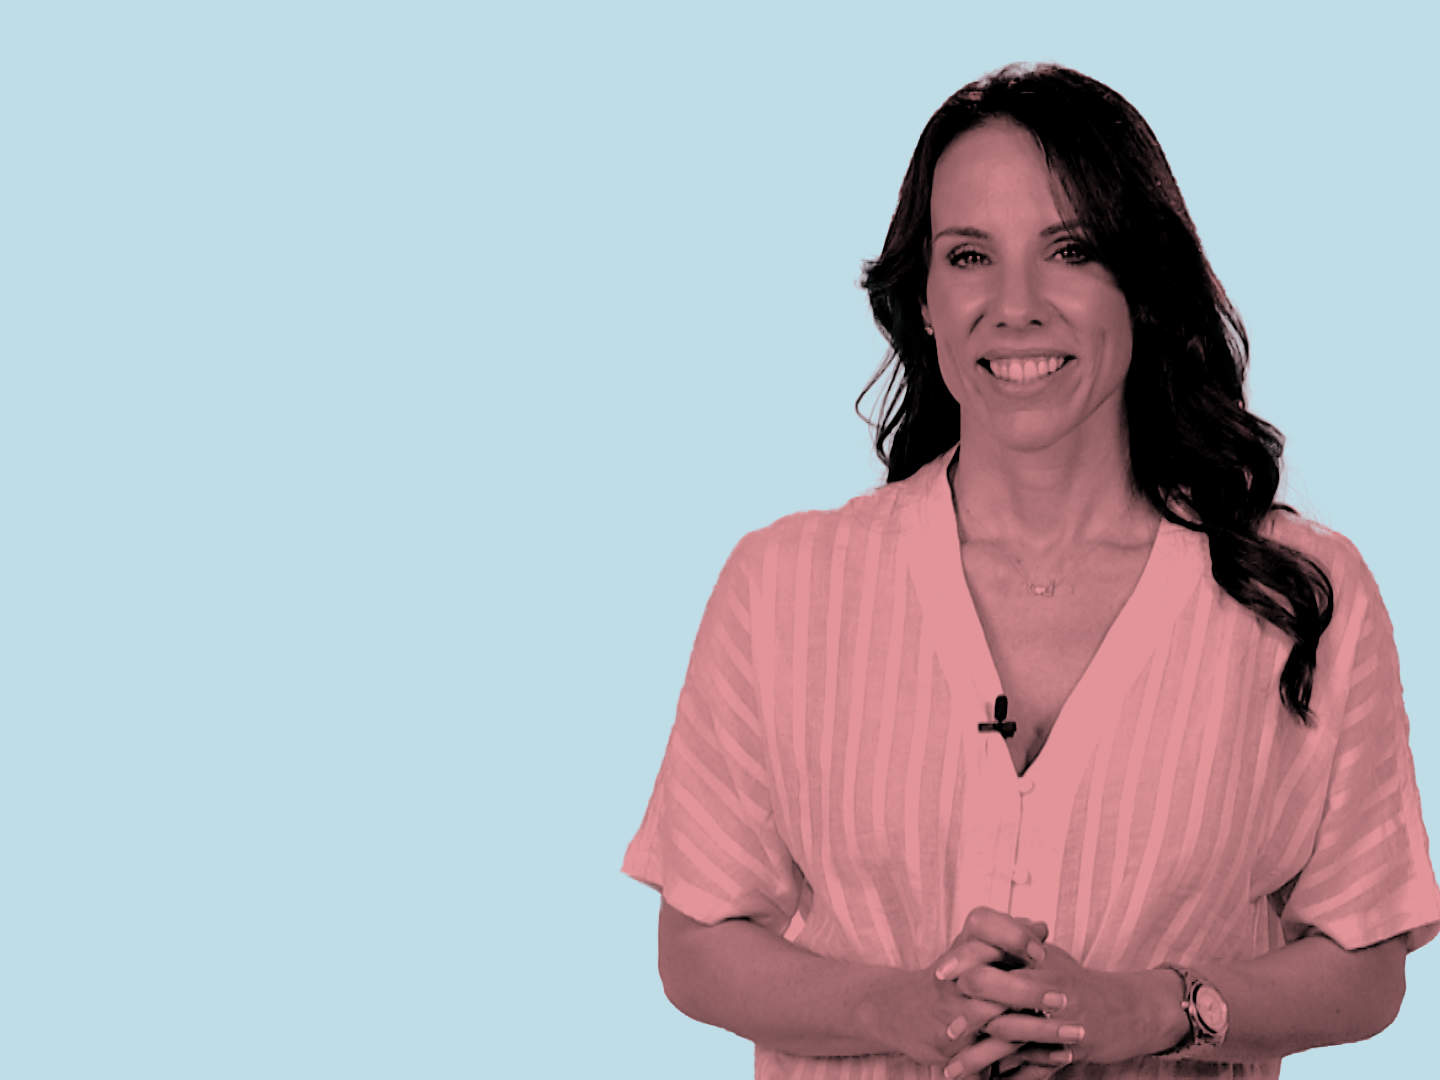 video woman women carrie-dorr health advice wellbeing hapiness